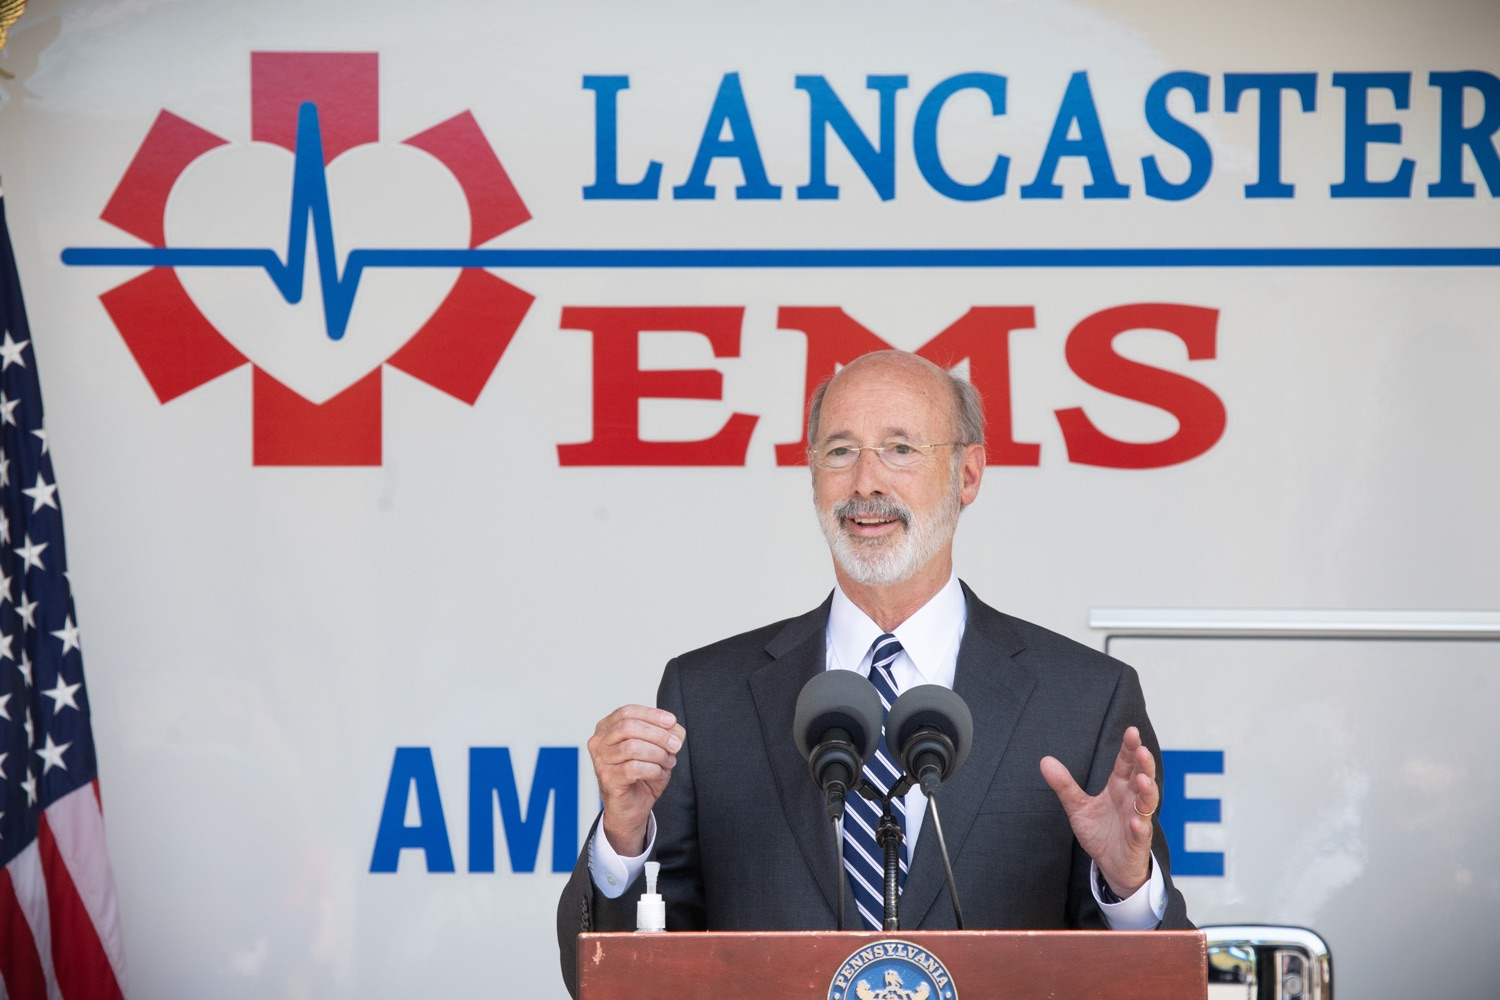 "<a href=""https://filesource.wostreaming.net/commonwealthofpa/photo/18180_gov_first_responders_dz_001.jpg"" target=""_blank"">⇣ Download Photo<br></a>Pennsylvania Governor Tom Wolf speaking to the press. Governor Tom Wolf visited the Millersville location of Lancaster EMS today to thank first responders and learn about how they are adapting their critical work during the states response to the COVID-19 pandemic.  Millersville, PA  July 30, 2020"